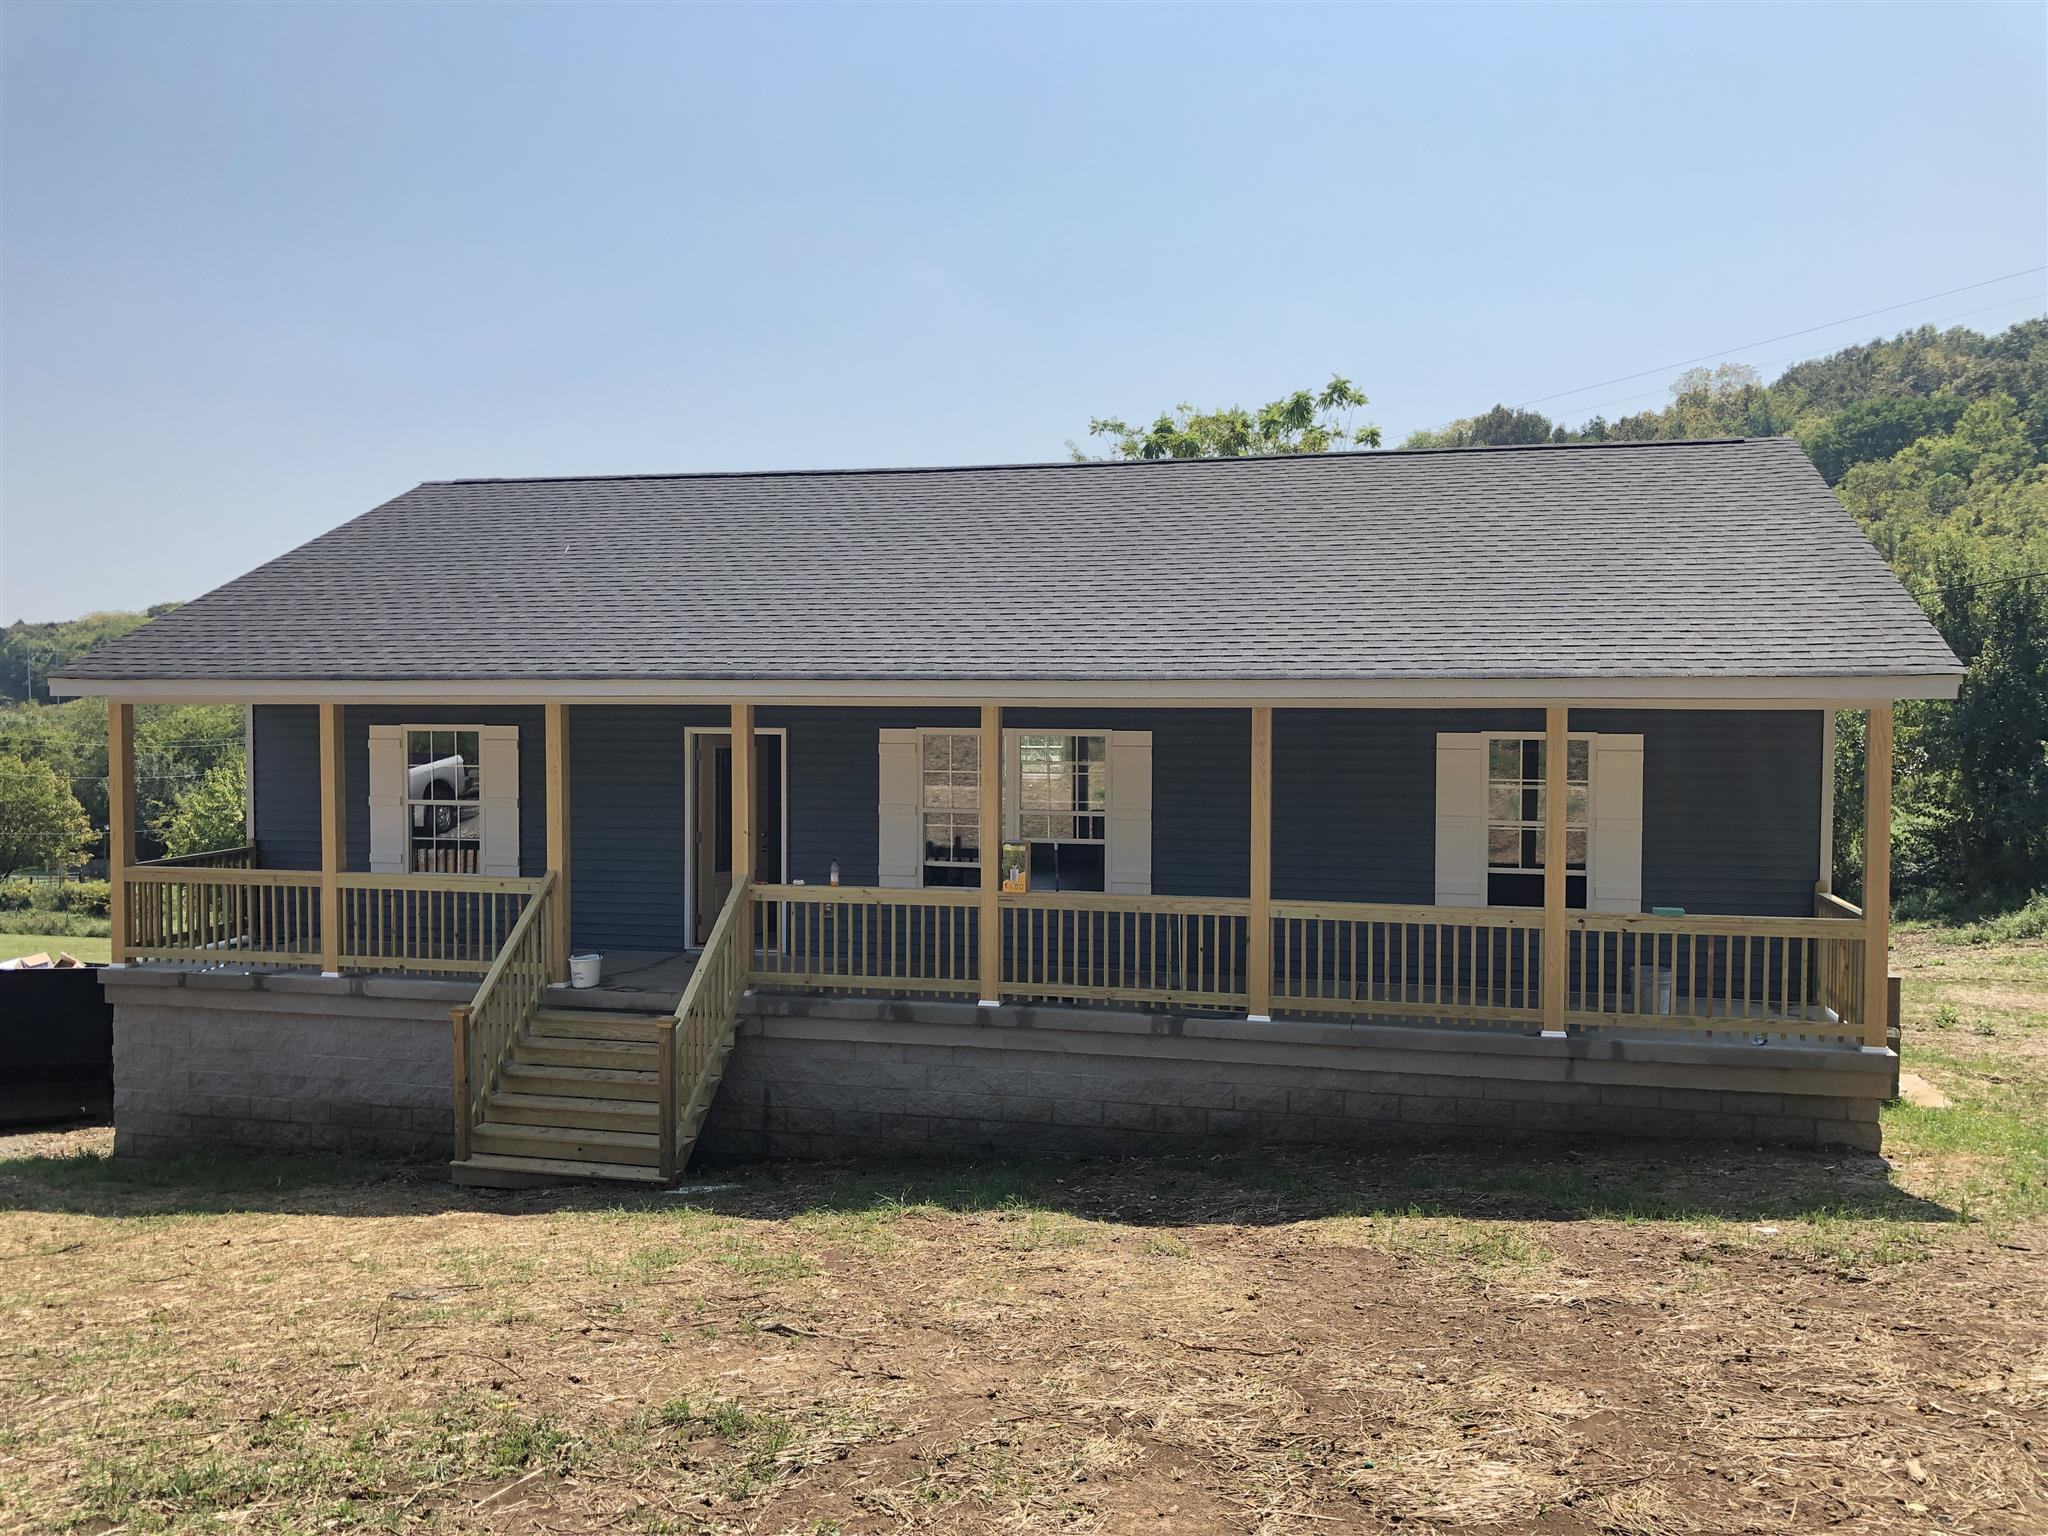 169 Ward Hollow Rd, Brush Creek, TN 38547 - Brush Creek, TN real estate listing